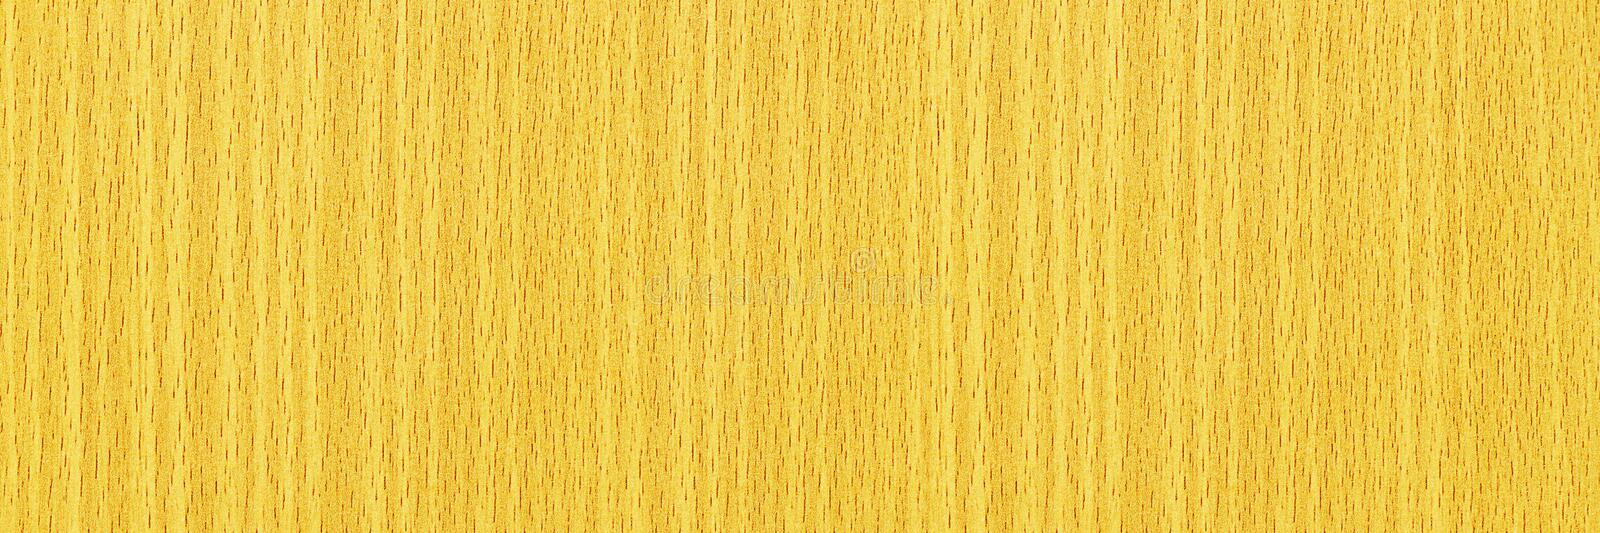 horizontal design of plywood for pattern and background royalty free stock images